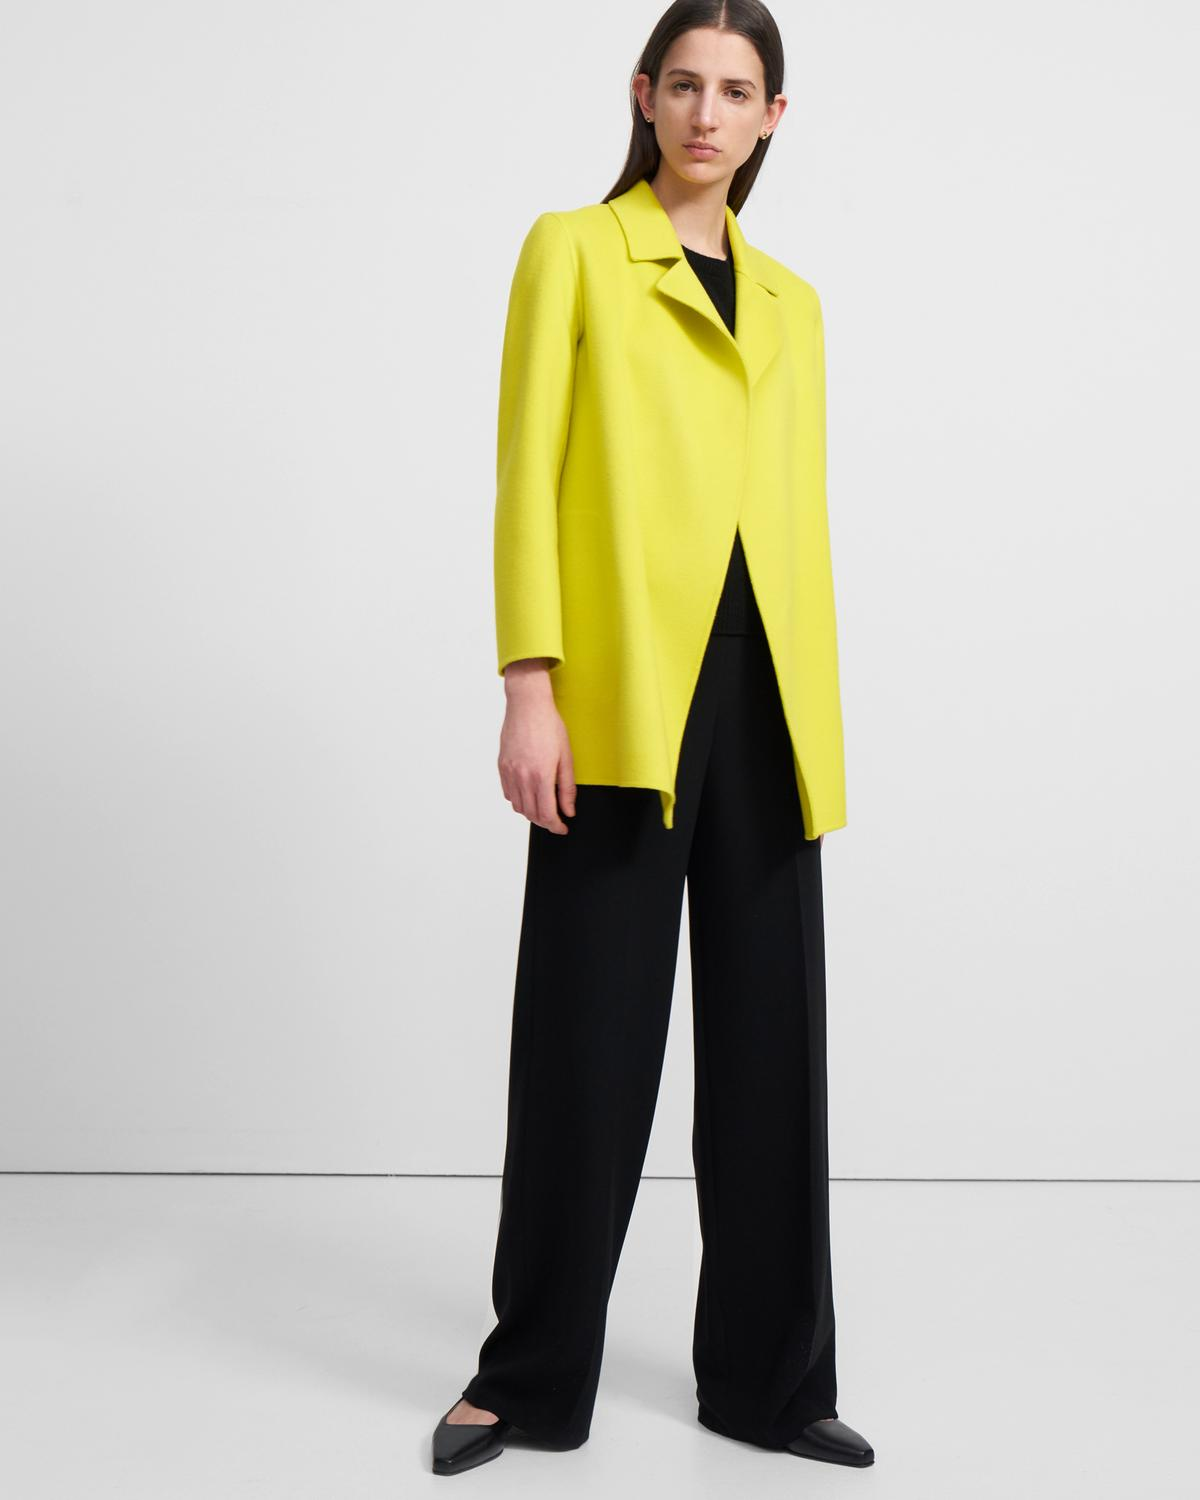 Clairene Jacket in Double-Face Wool-Cashmere 0 - click to view larger image